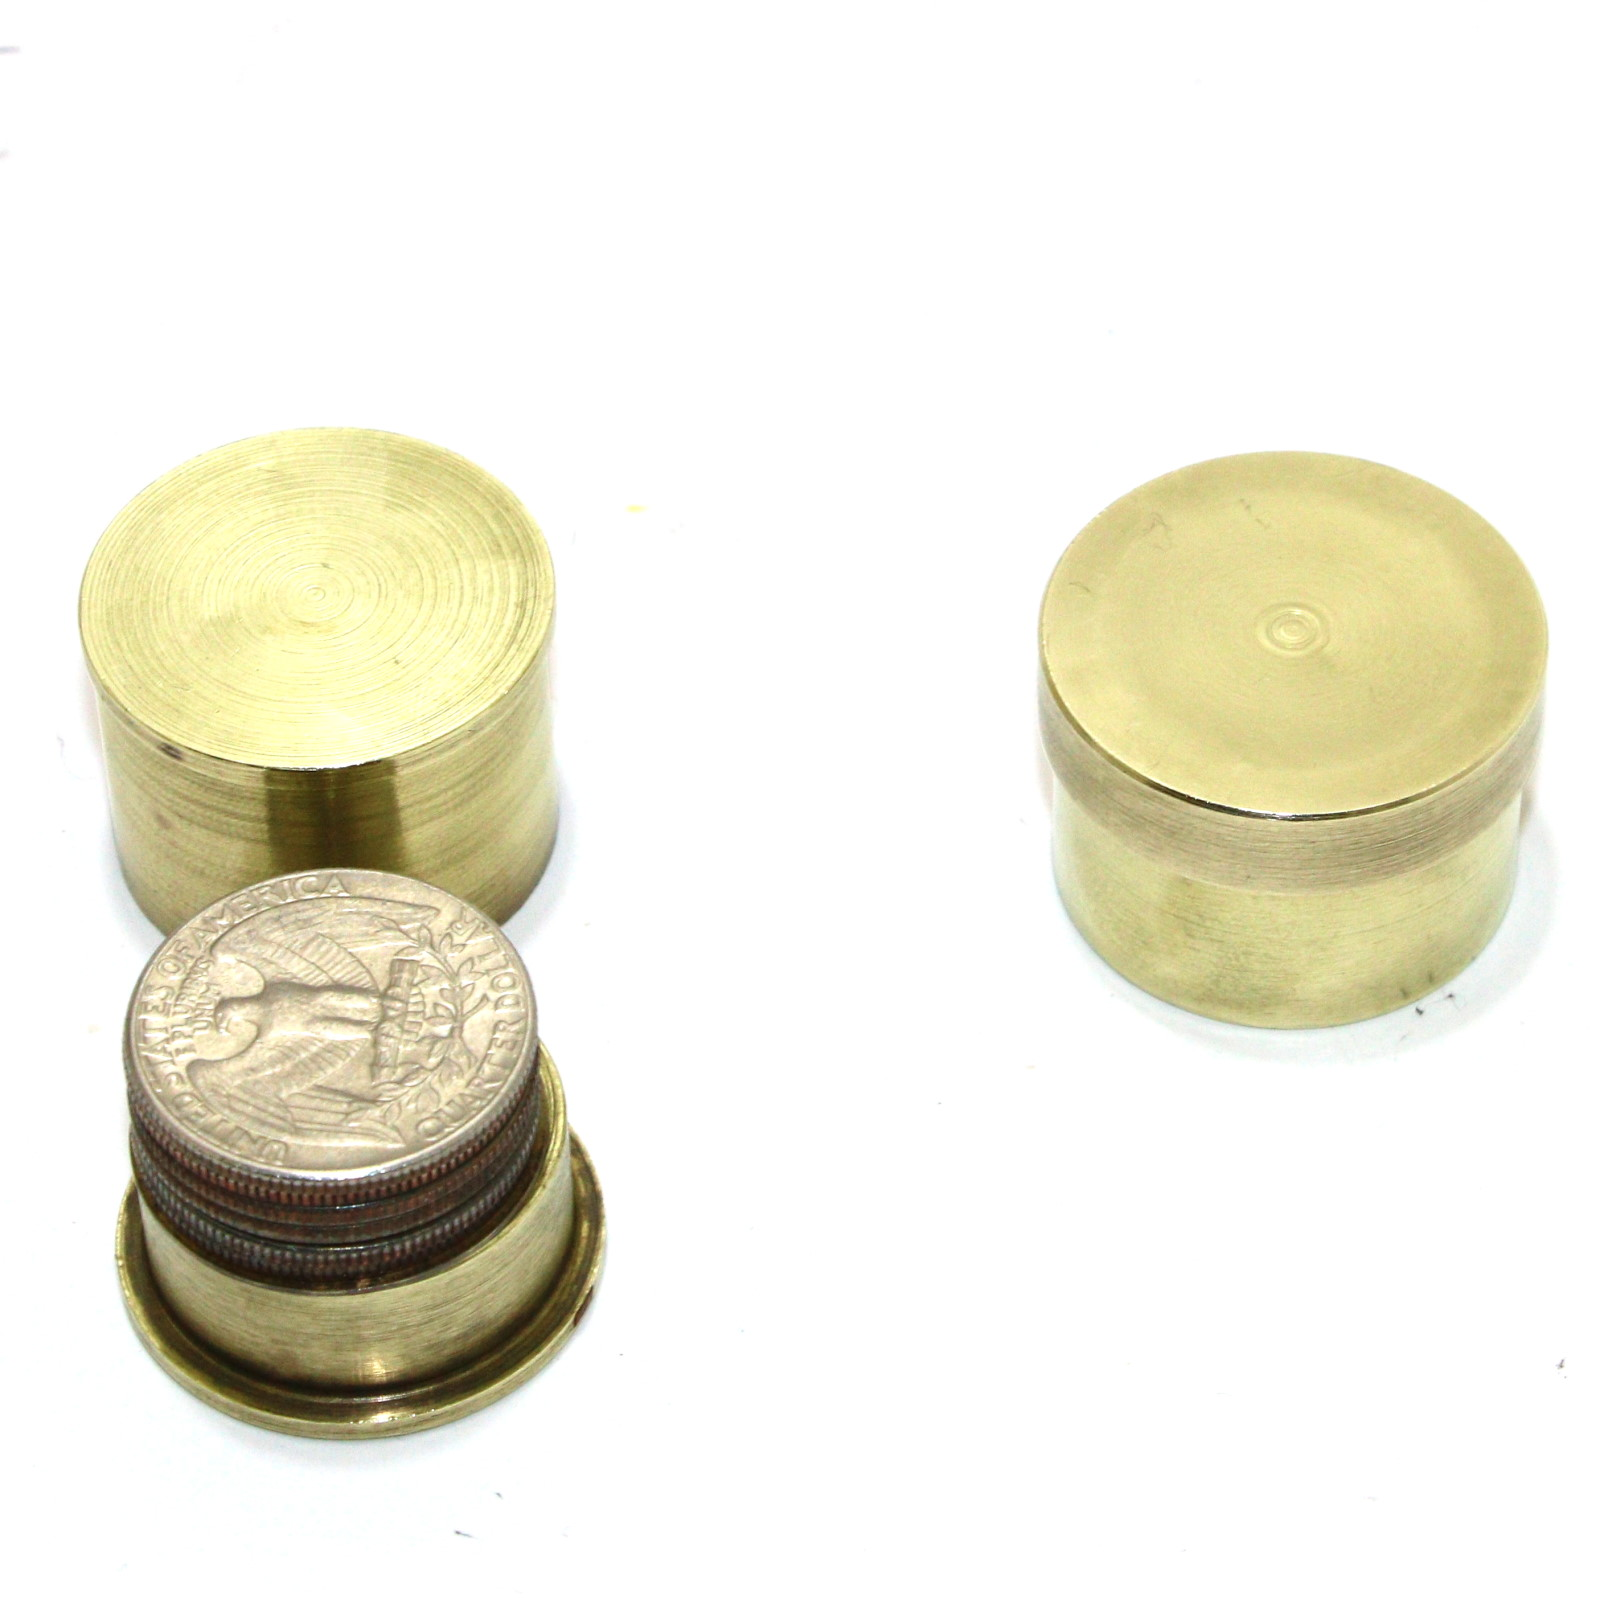 Ali Baba Coin Box and Paul Fox Cylinders by Paul Diamond, Eddie Gibson